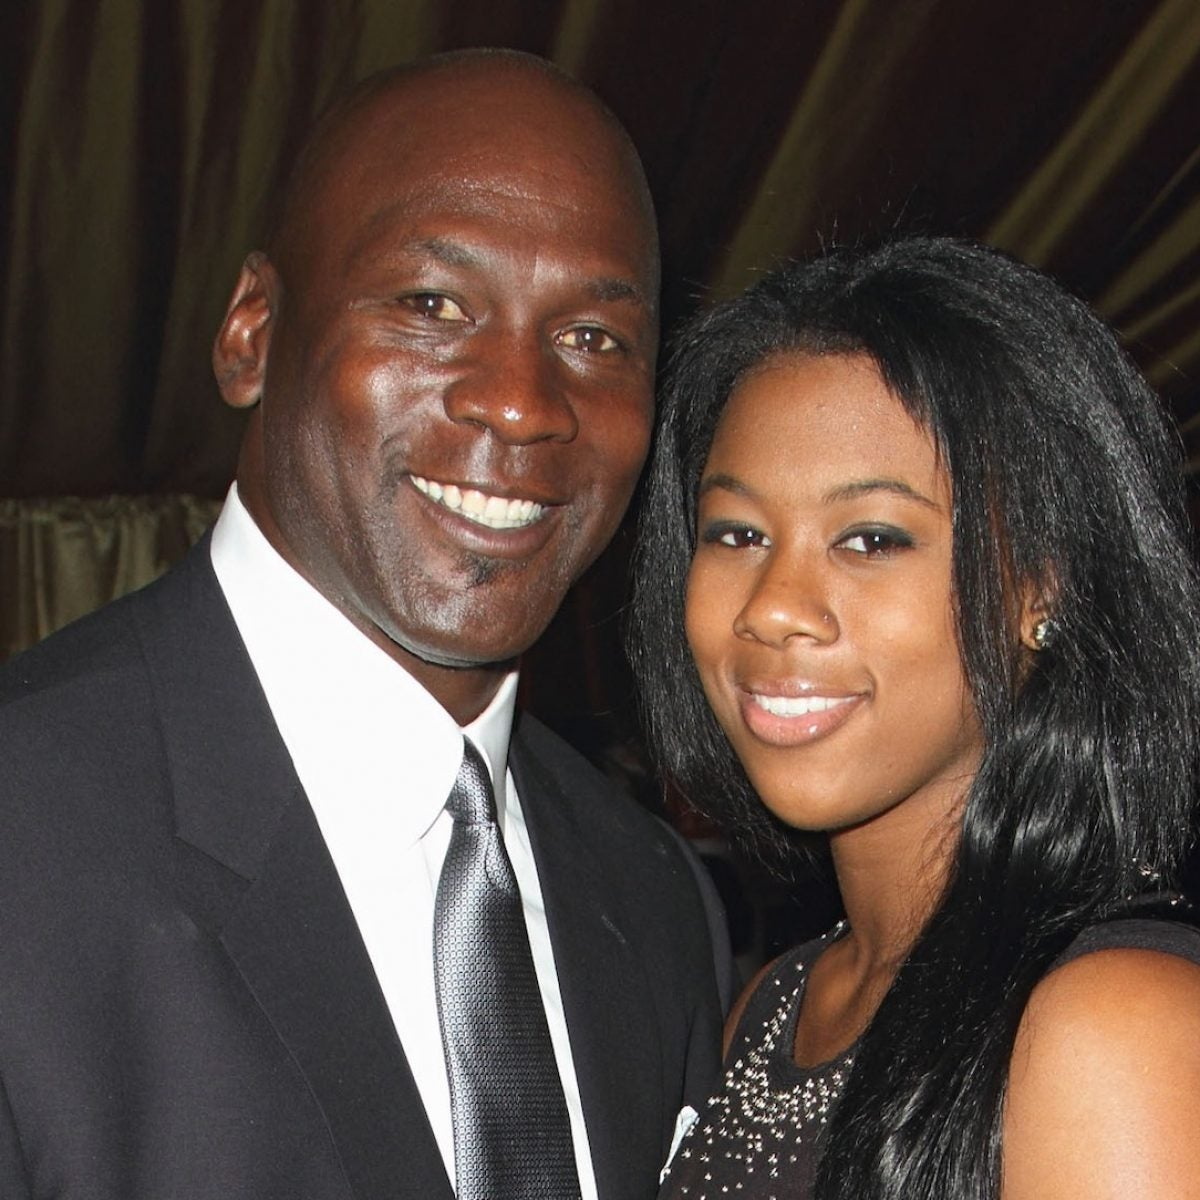 Michael Jordan's Daughter Jasmine Said Her Mother Juanita Wasn't Concerned About Being Absent From 'The Last Dance'